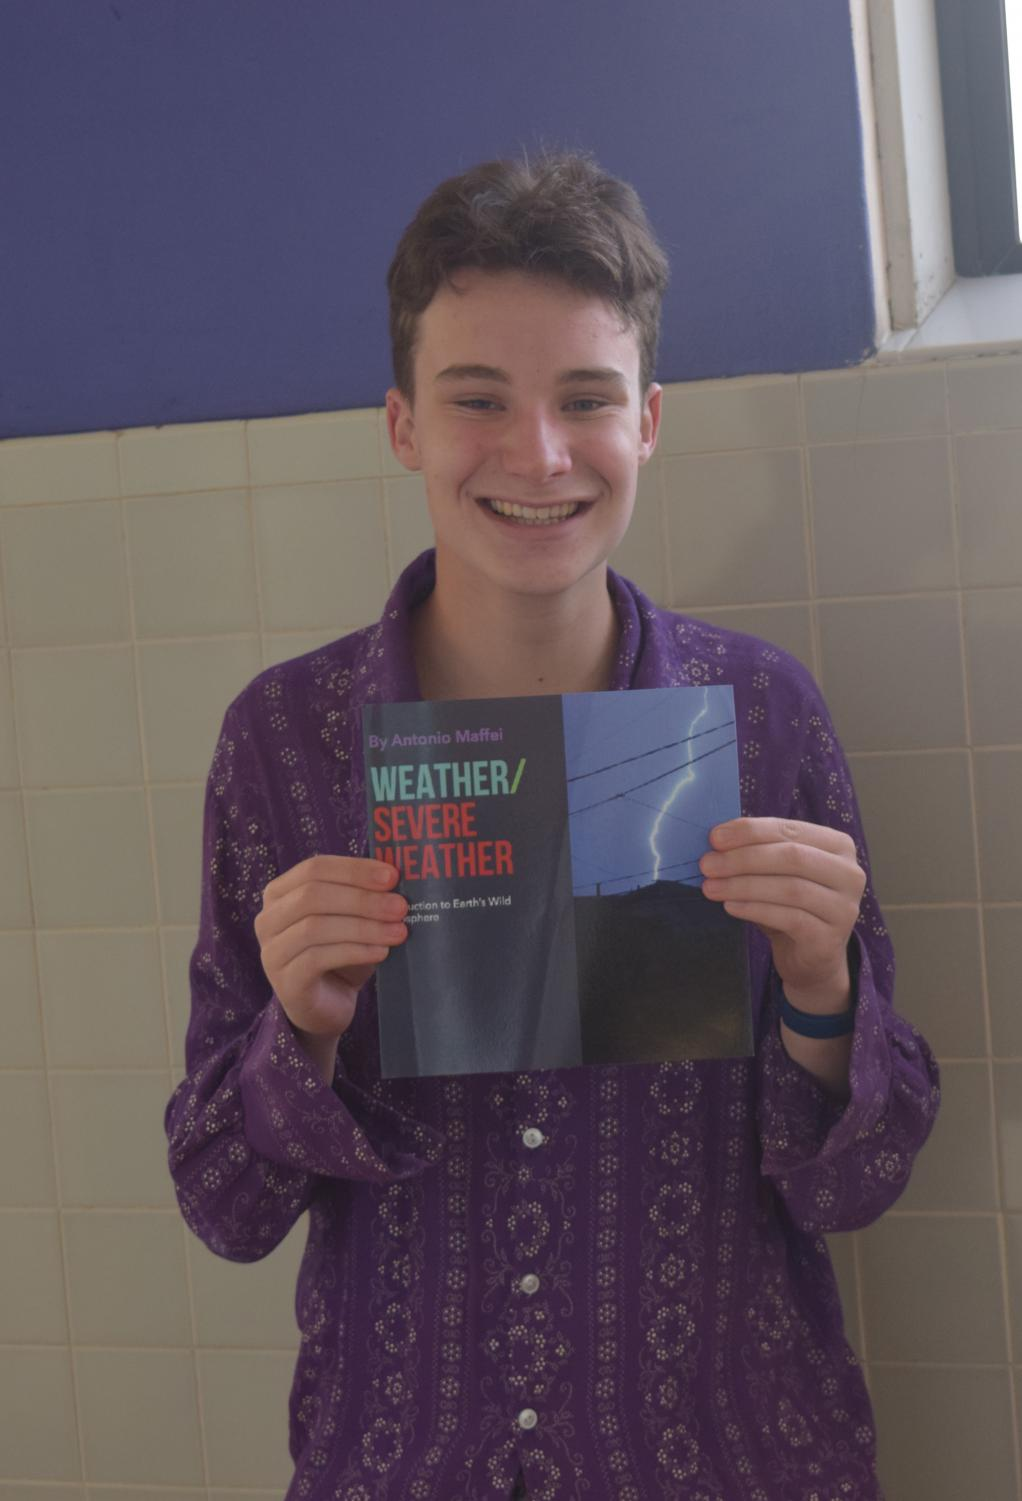 Antonio Maffei '20 has written two books about his life as a teen meteorologist, with another on the way.